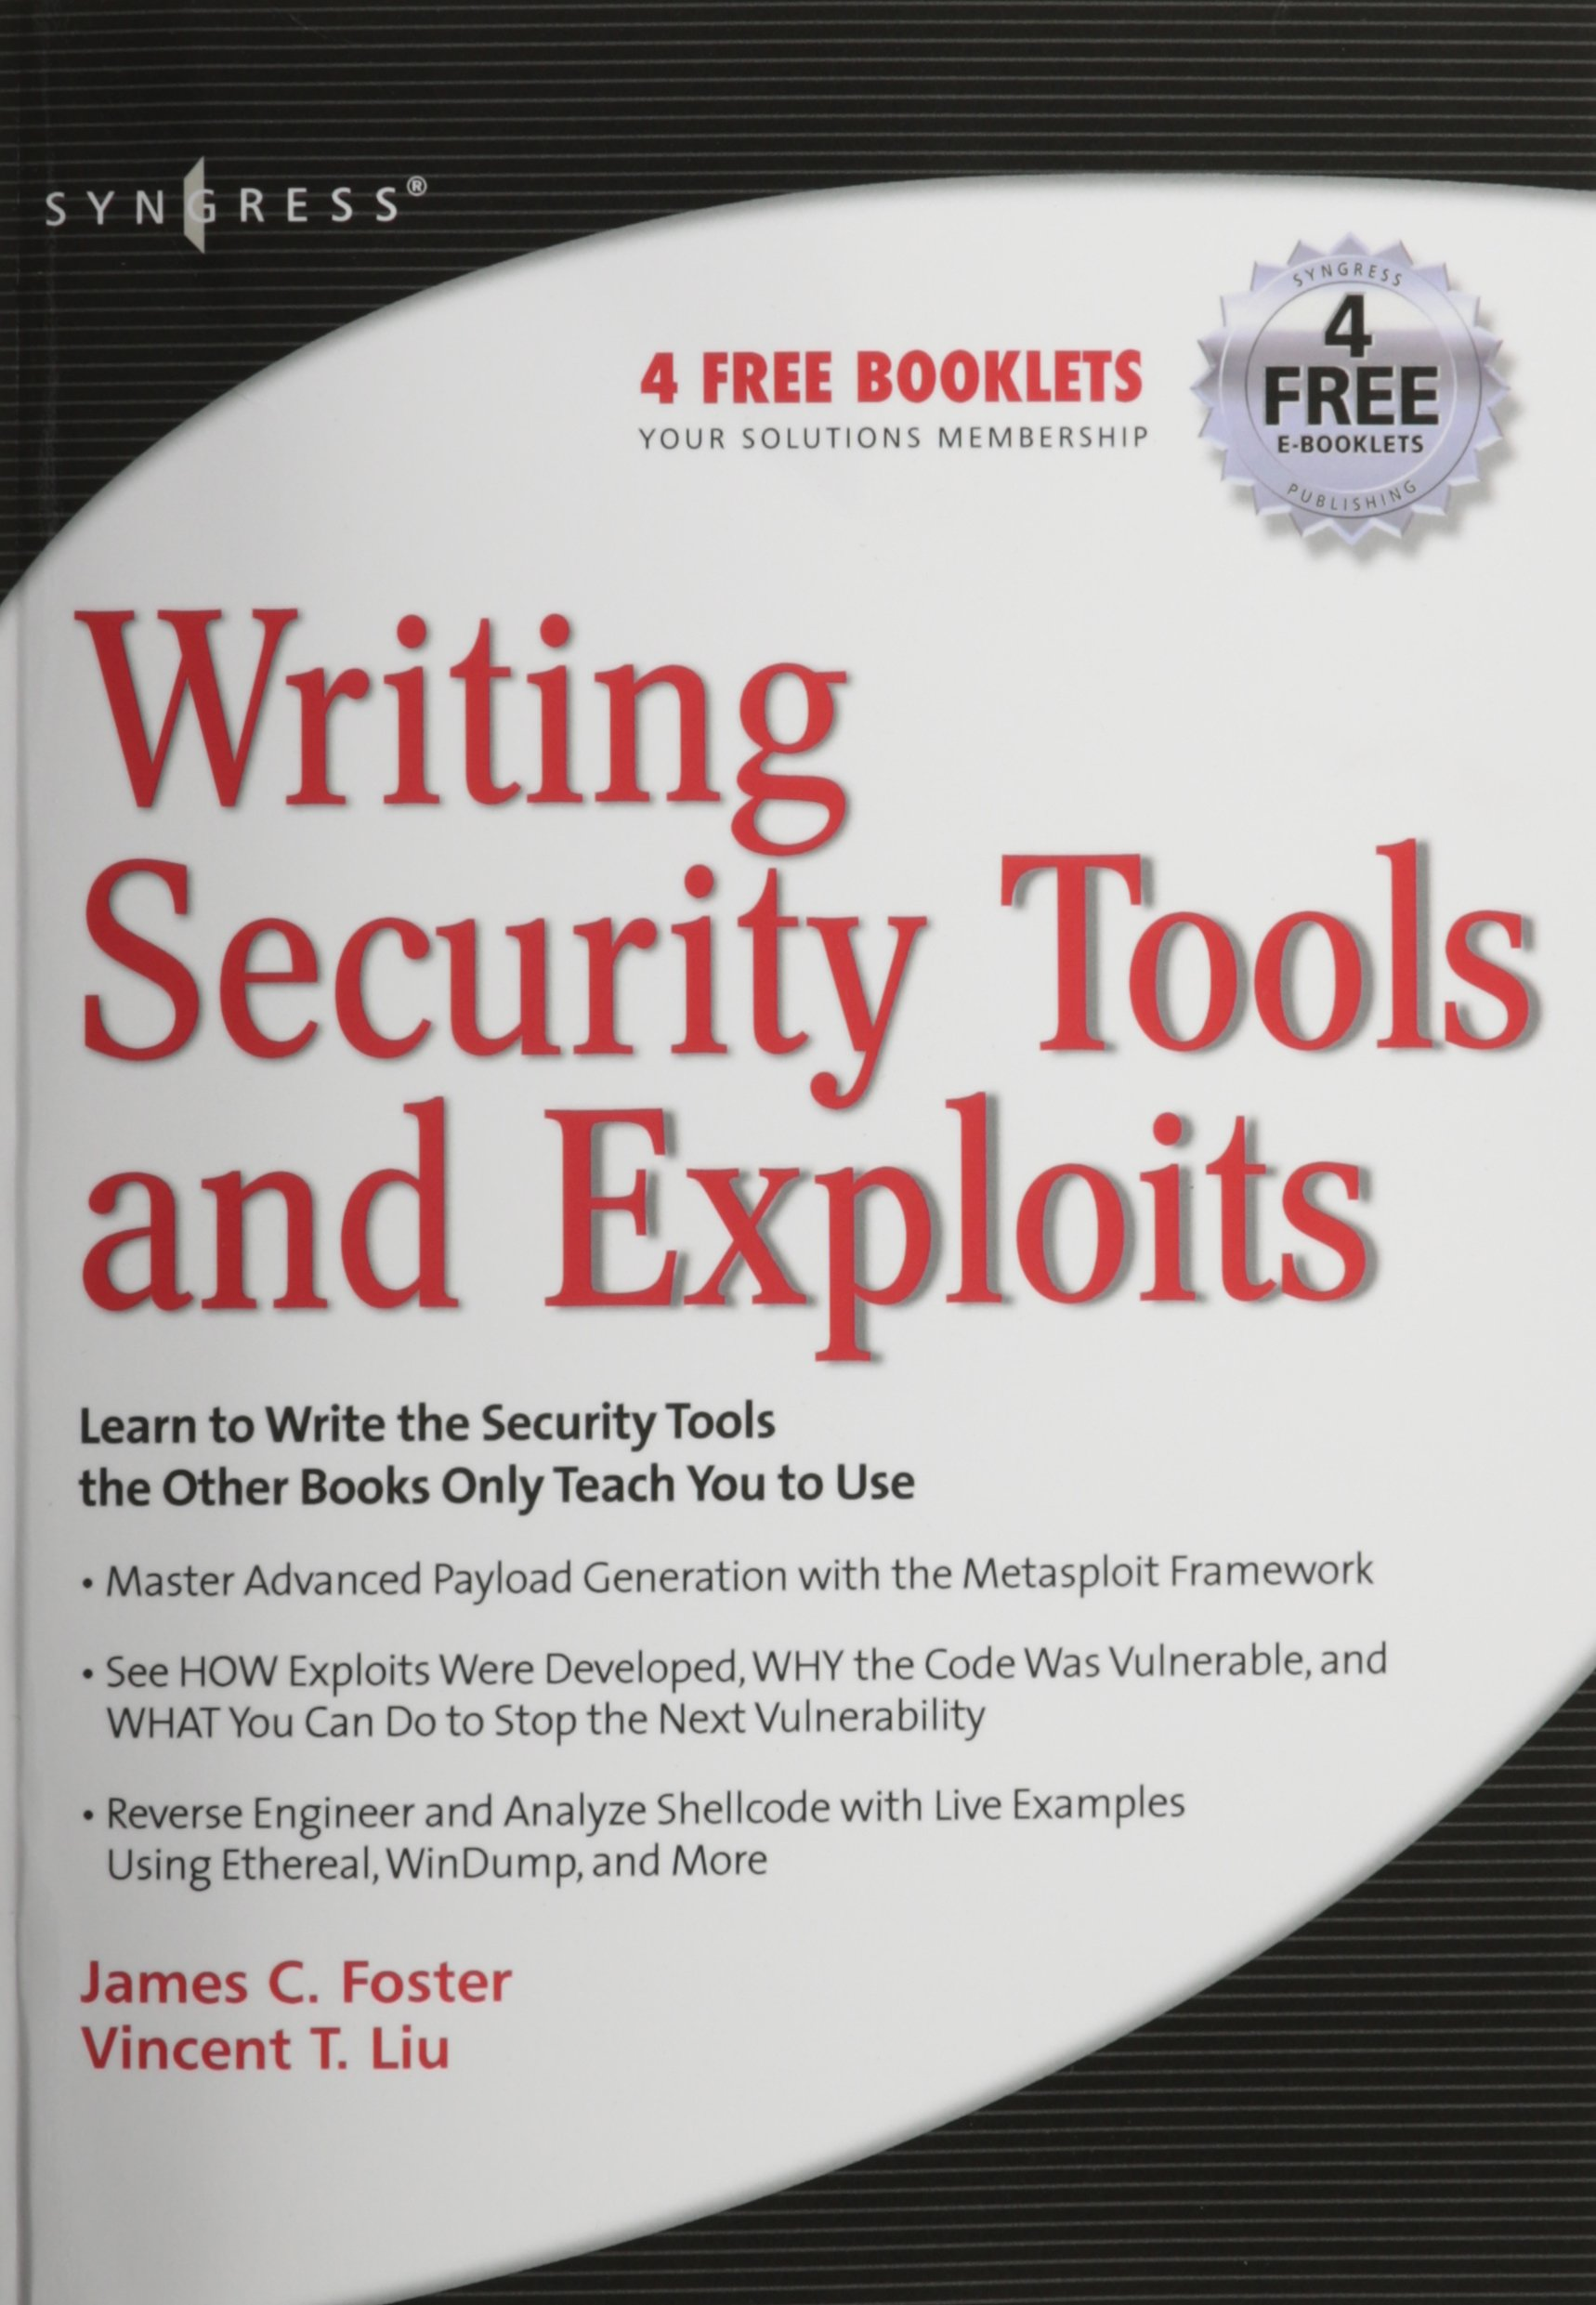 Writing Security Tools and Exploits: James C Foster: 9781597499972